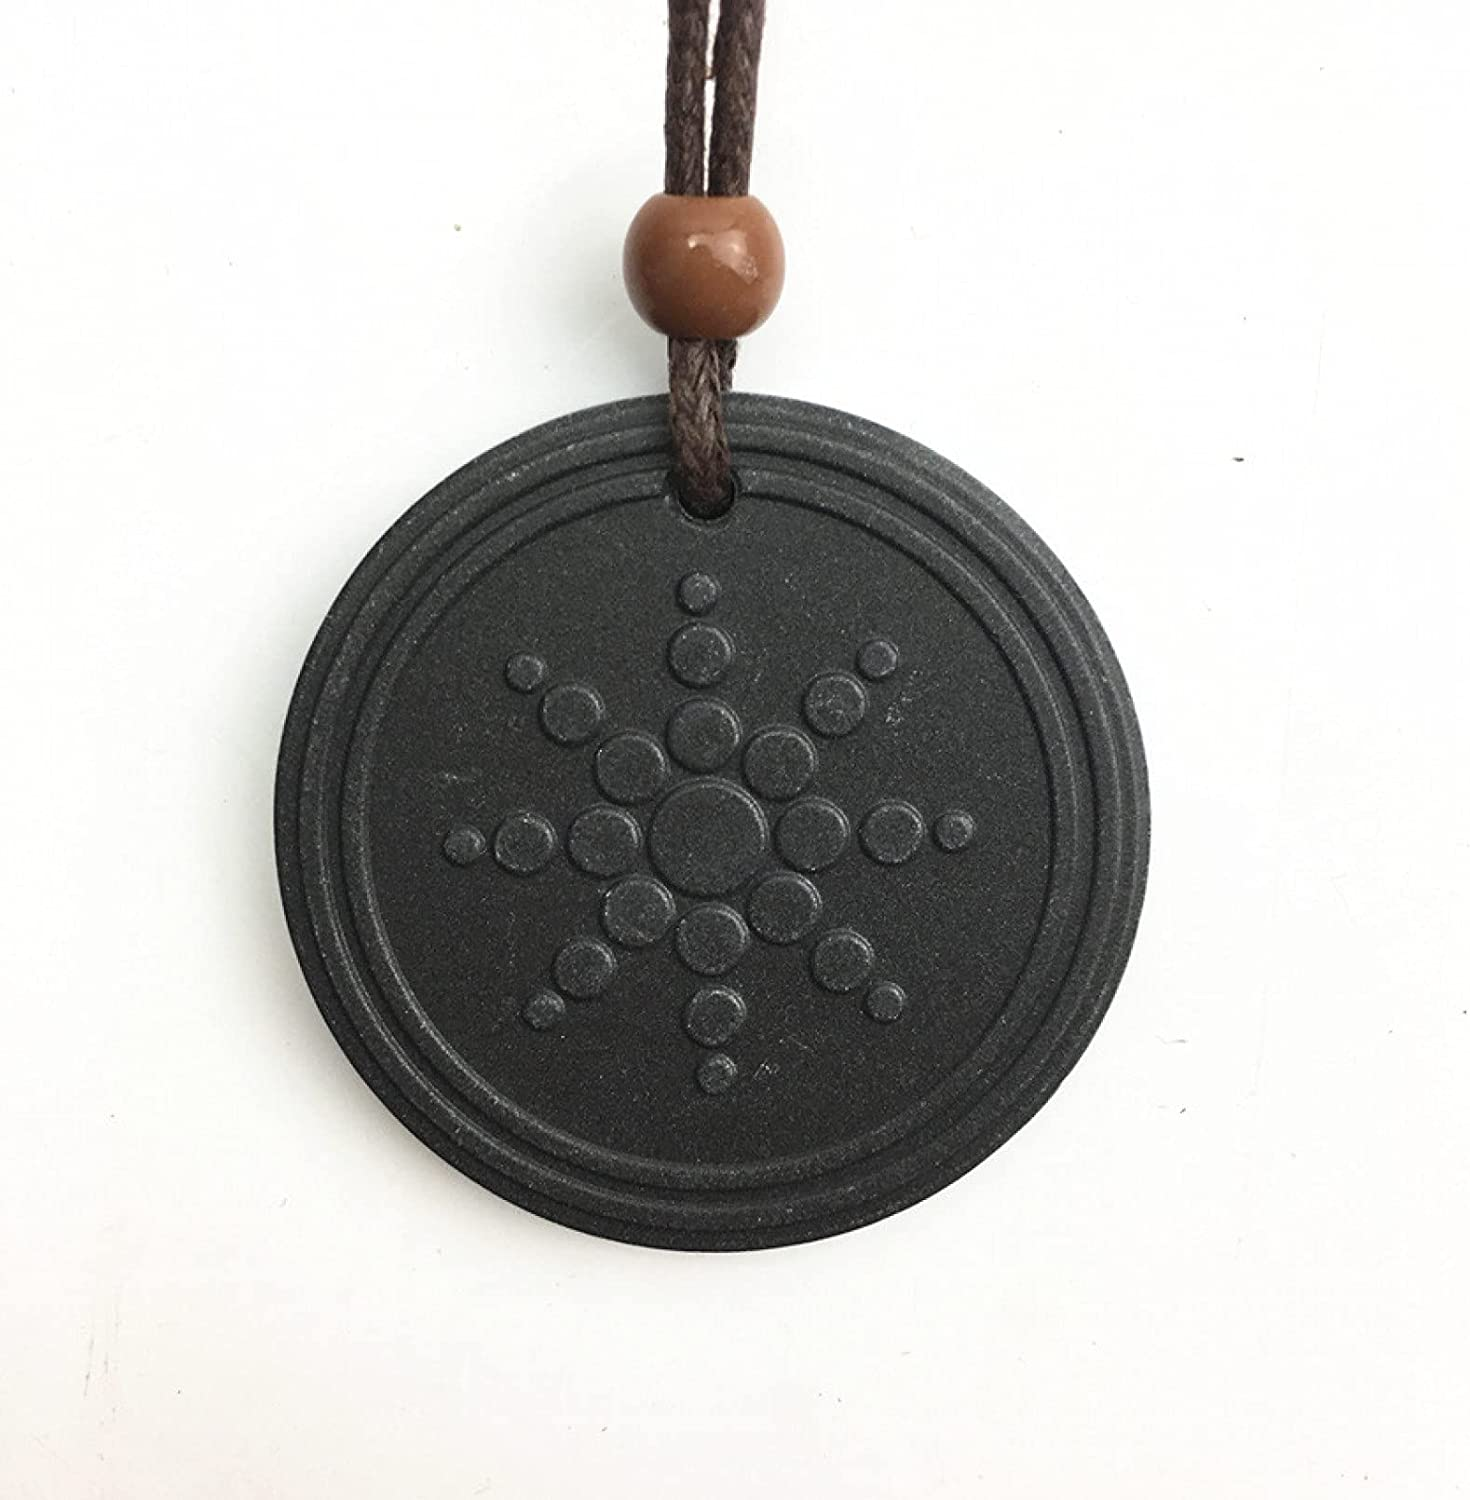 N/A Necklace Pendant Lava Sun-Flower Energy Necklace with Stainless Steel Chain Black Scalar Protection Quantum Pendant Necklaces Christmas Mother's Day Valentine's Day Birthday Gift